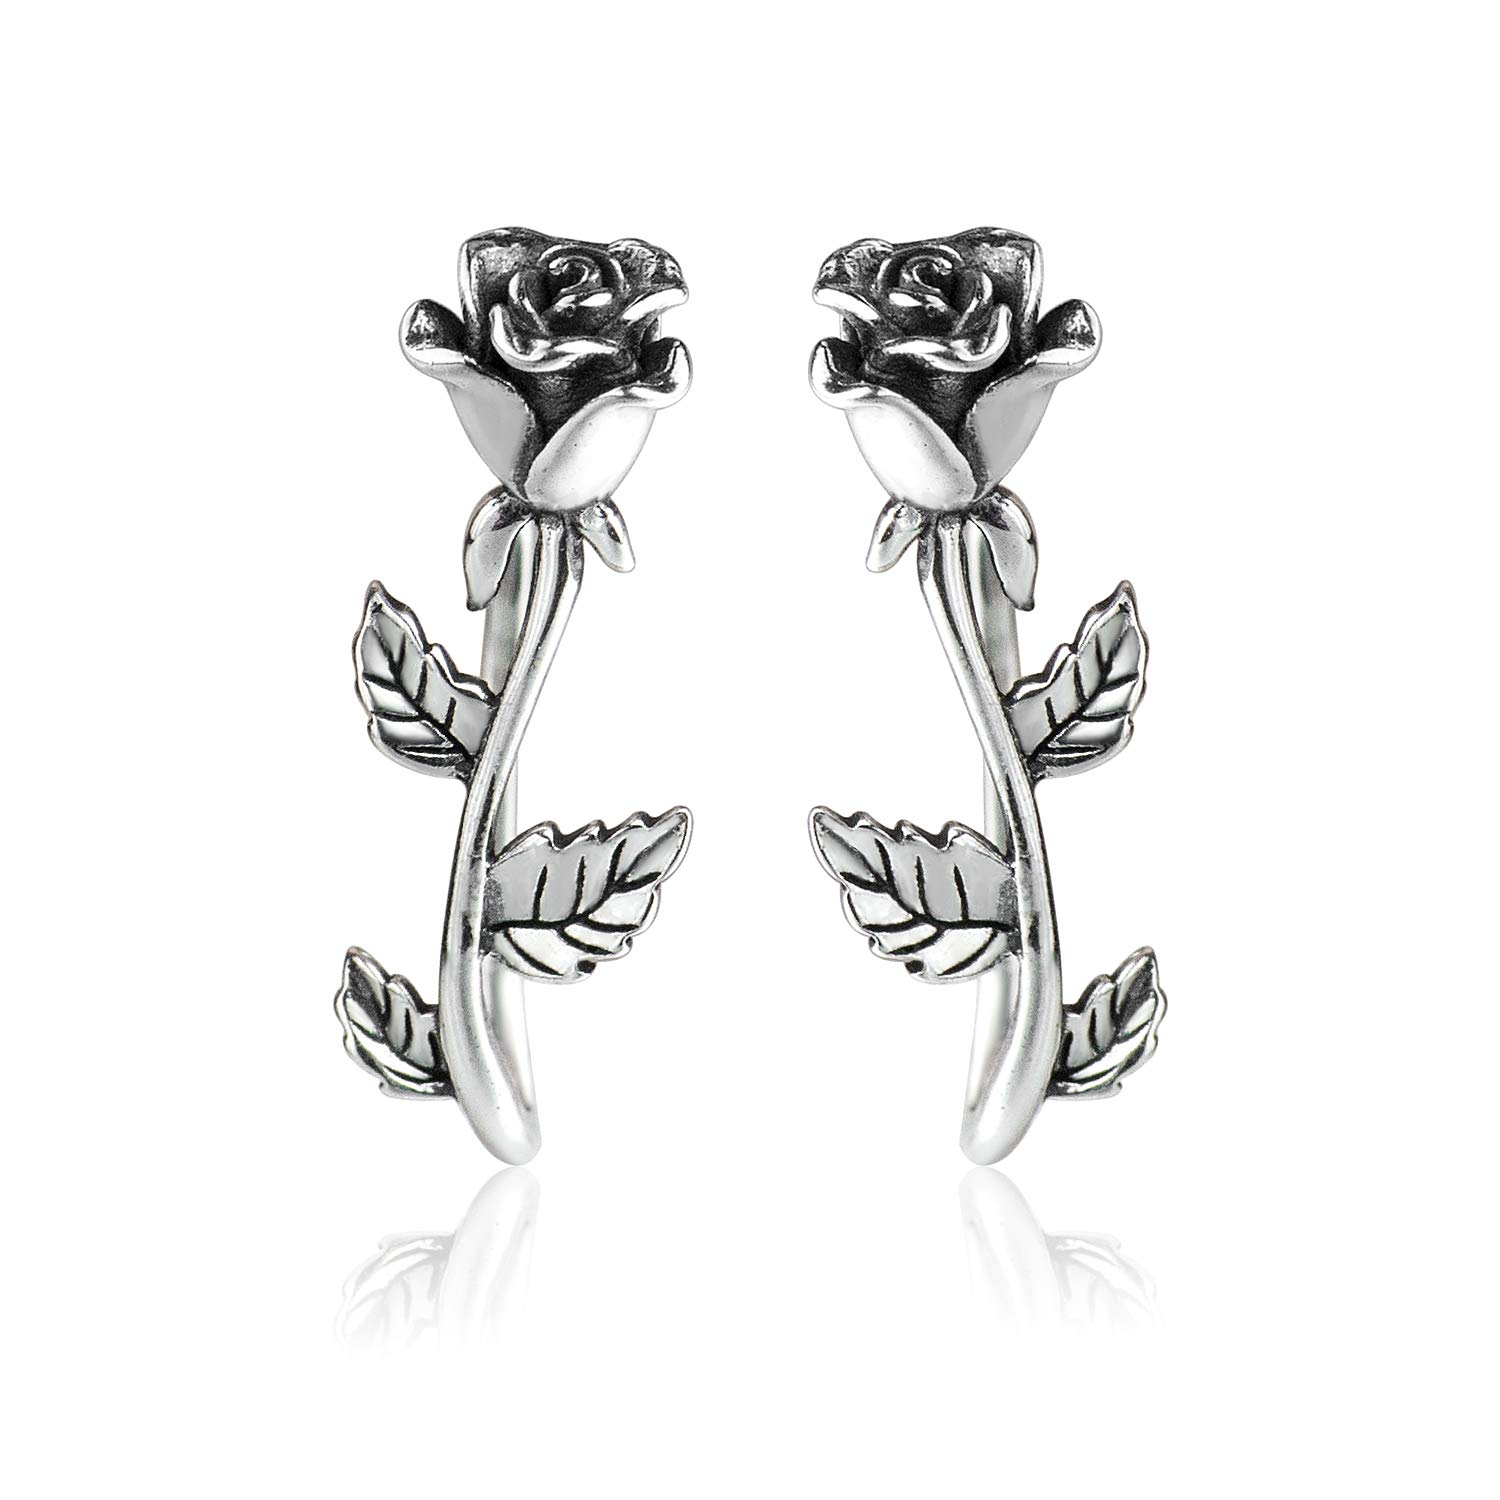 Wicary Rose Ear Crawler Cuff Earrings Sterling Silver Studs Ear Climber Hypoallergenic